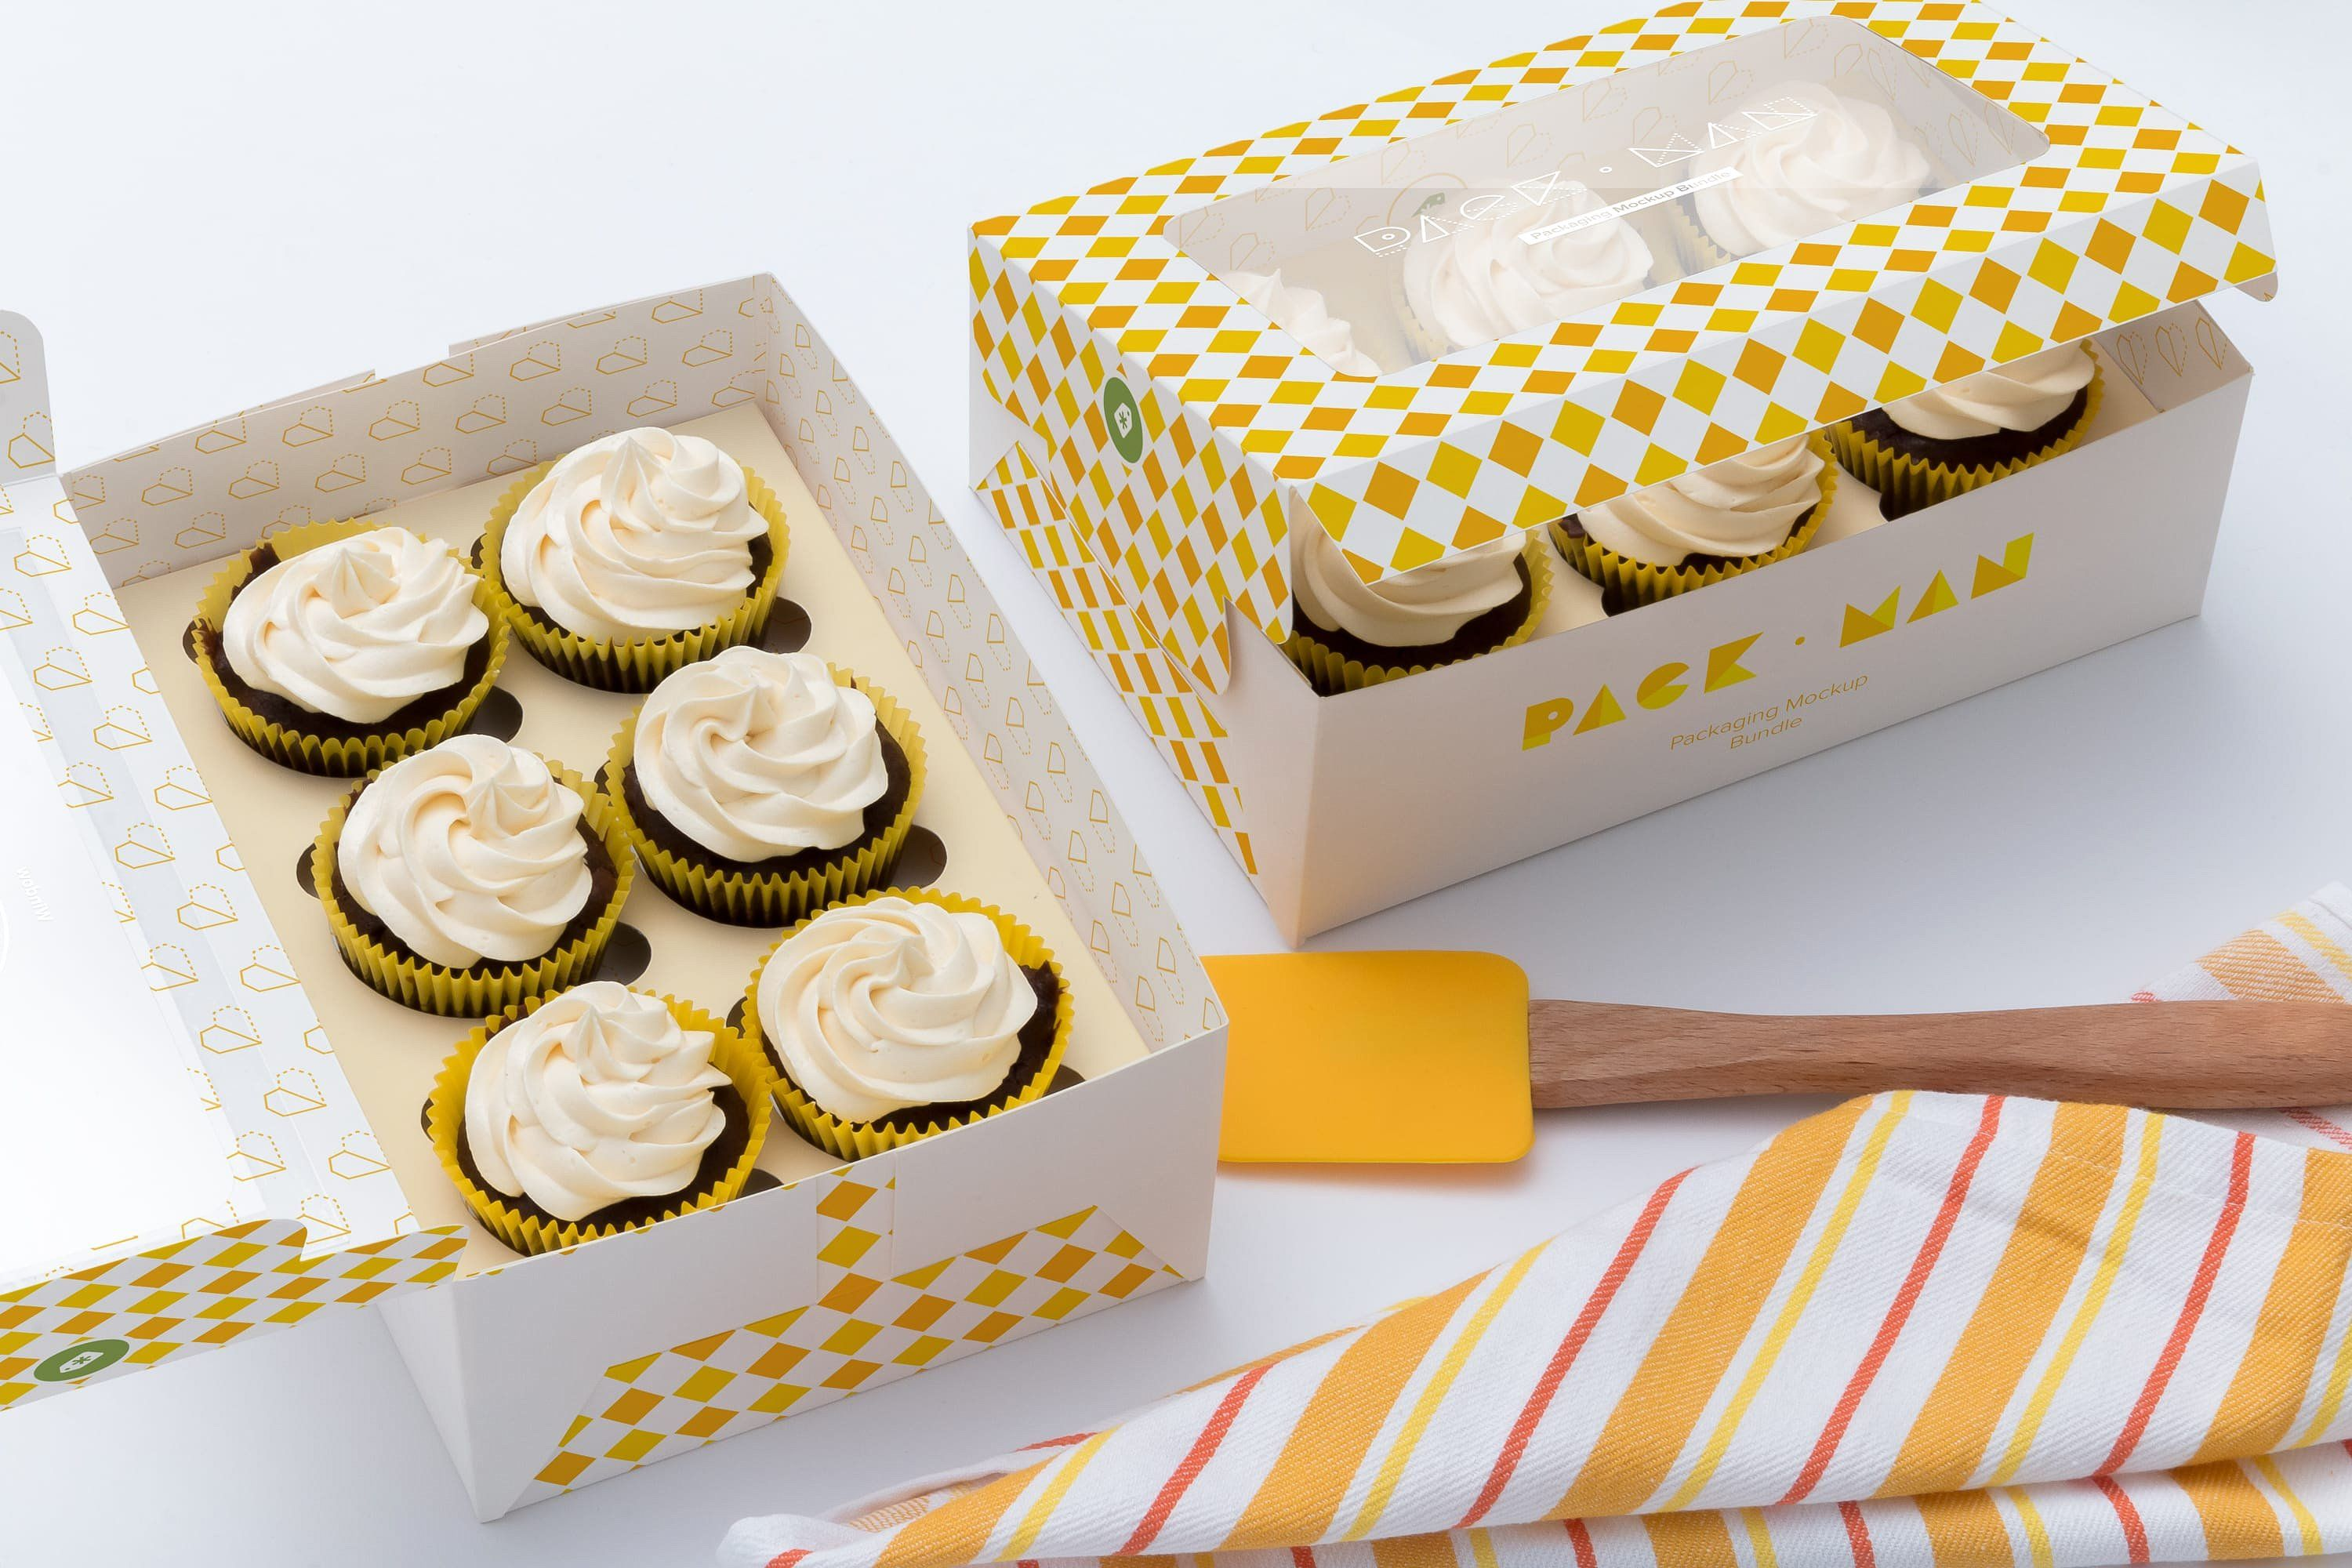 4 Benefits of Using Custom Cupcake Packaging Boxes for Your Business